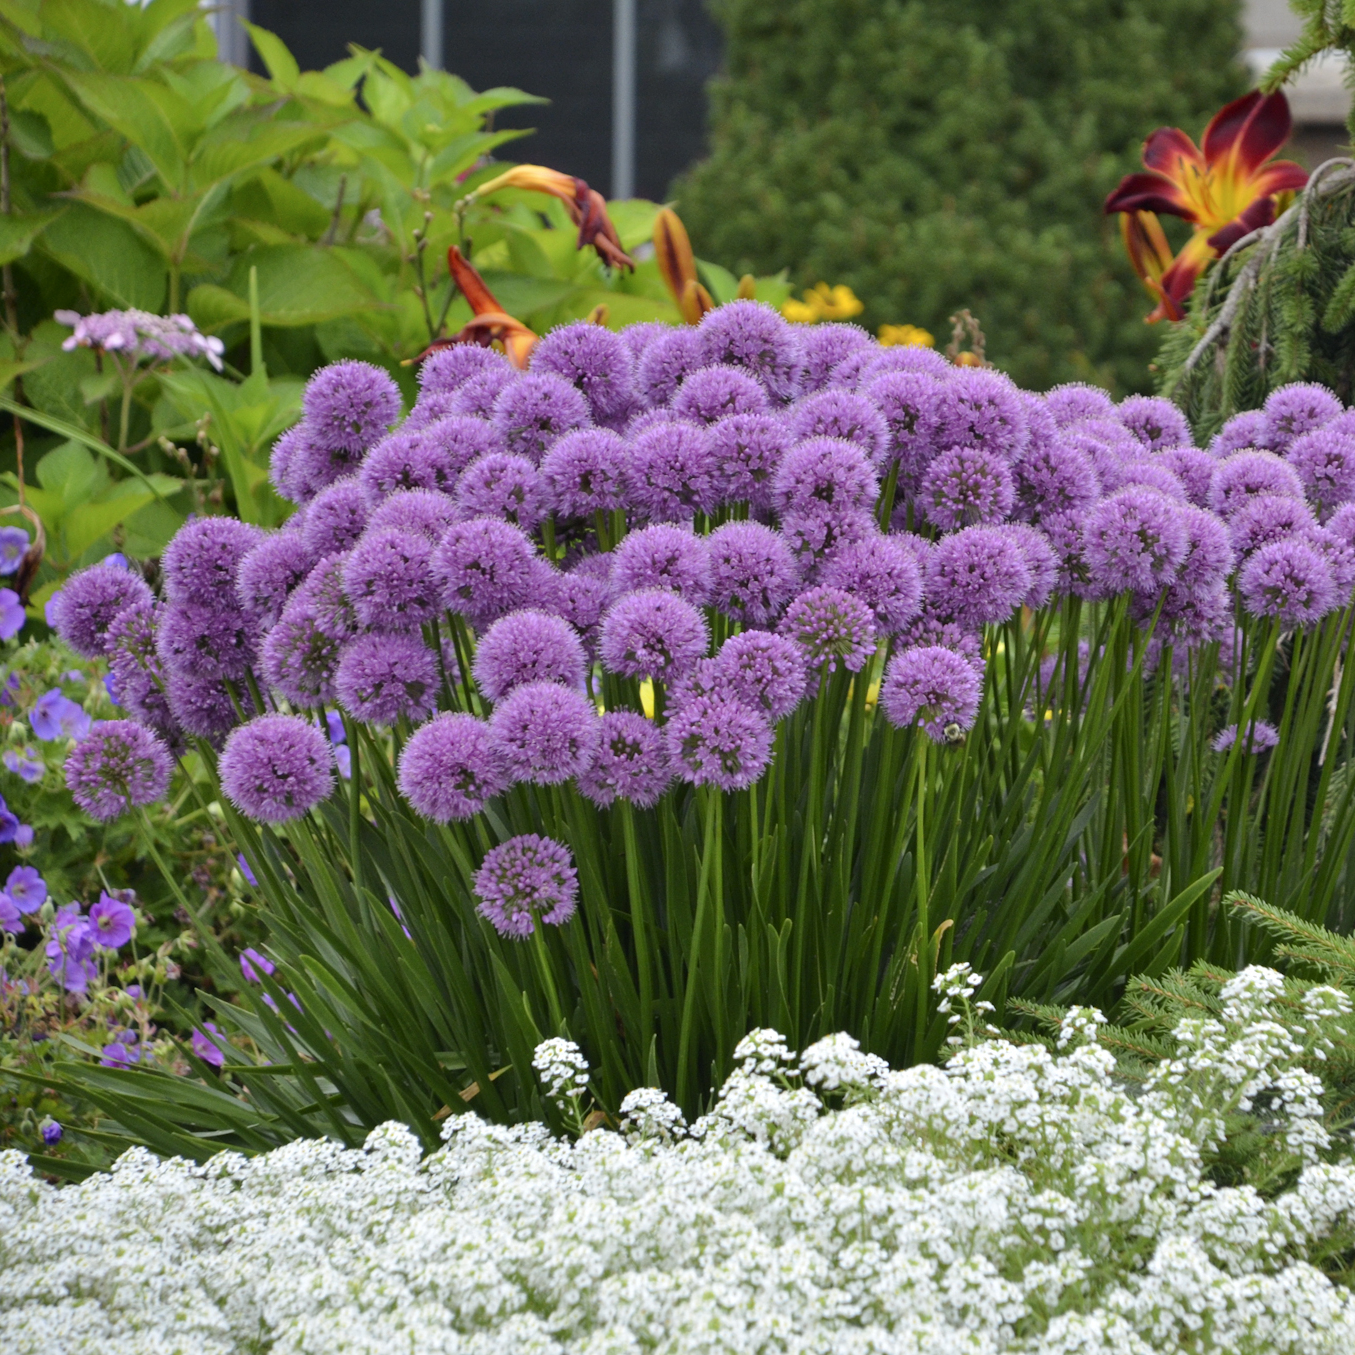 Allium 'Millenium', 2018 Perennial Plant of the Year ...